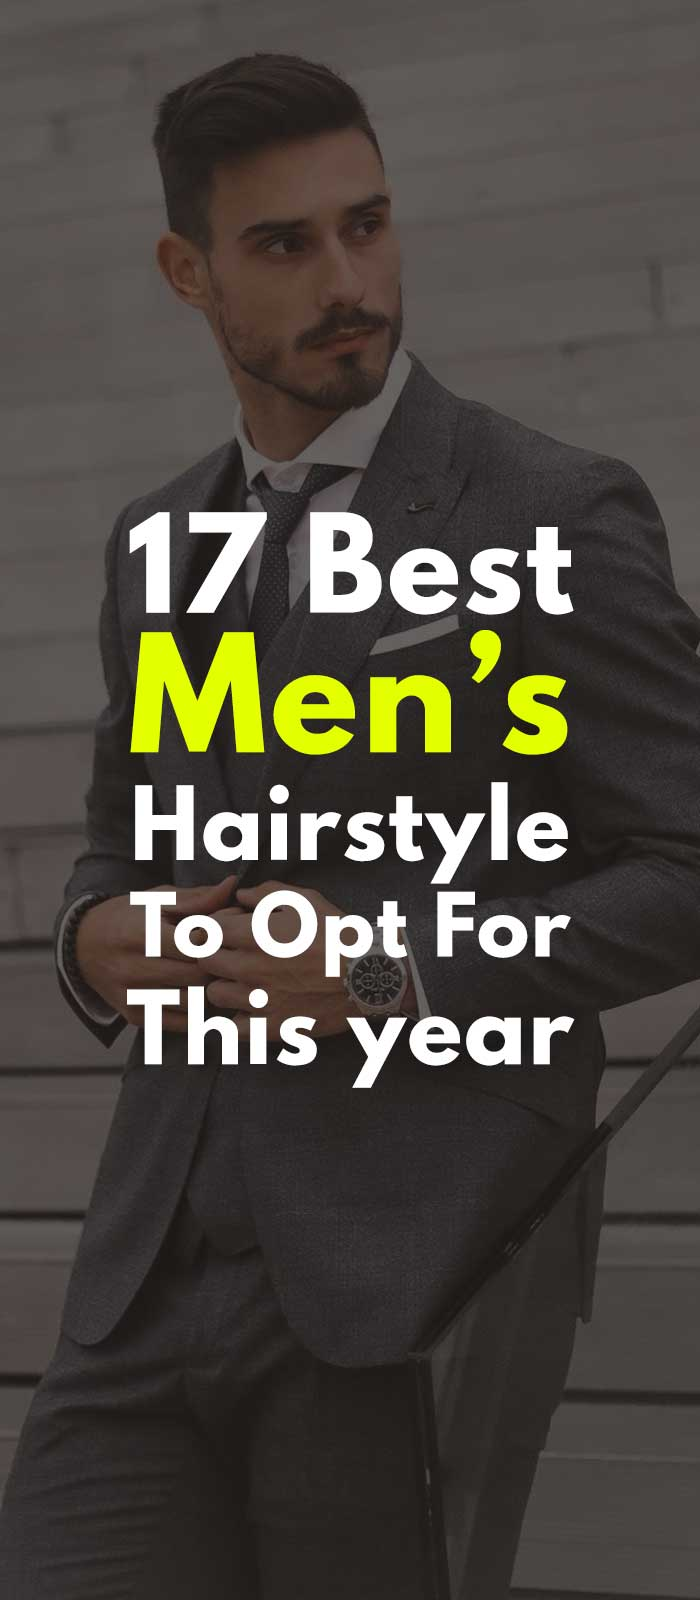 17 Best Men's Hairstyle To Opt For This year